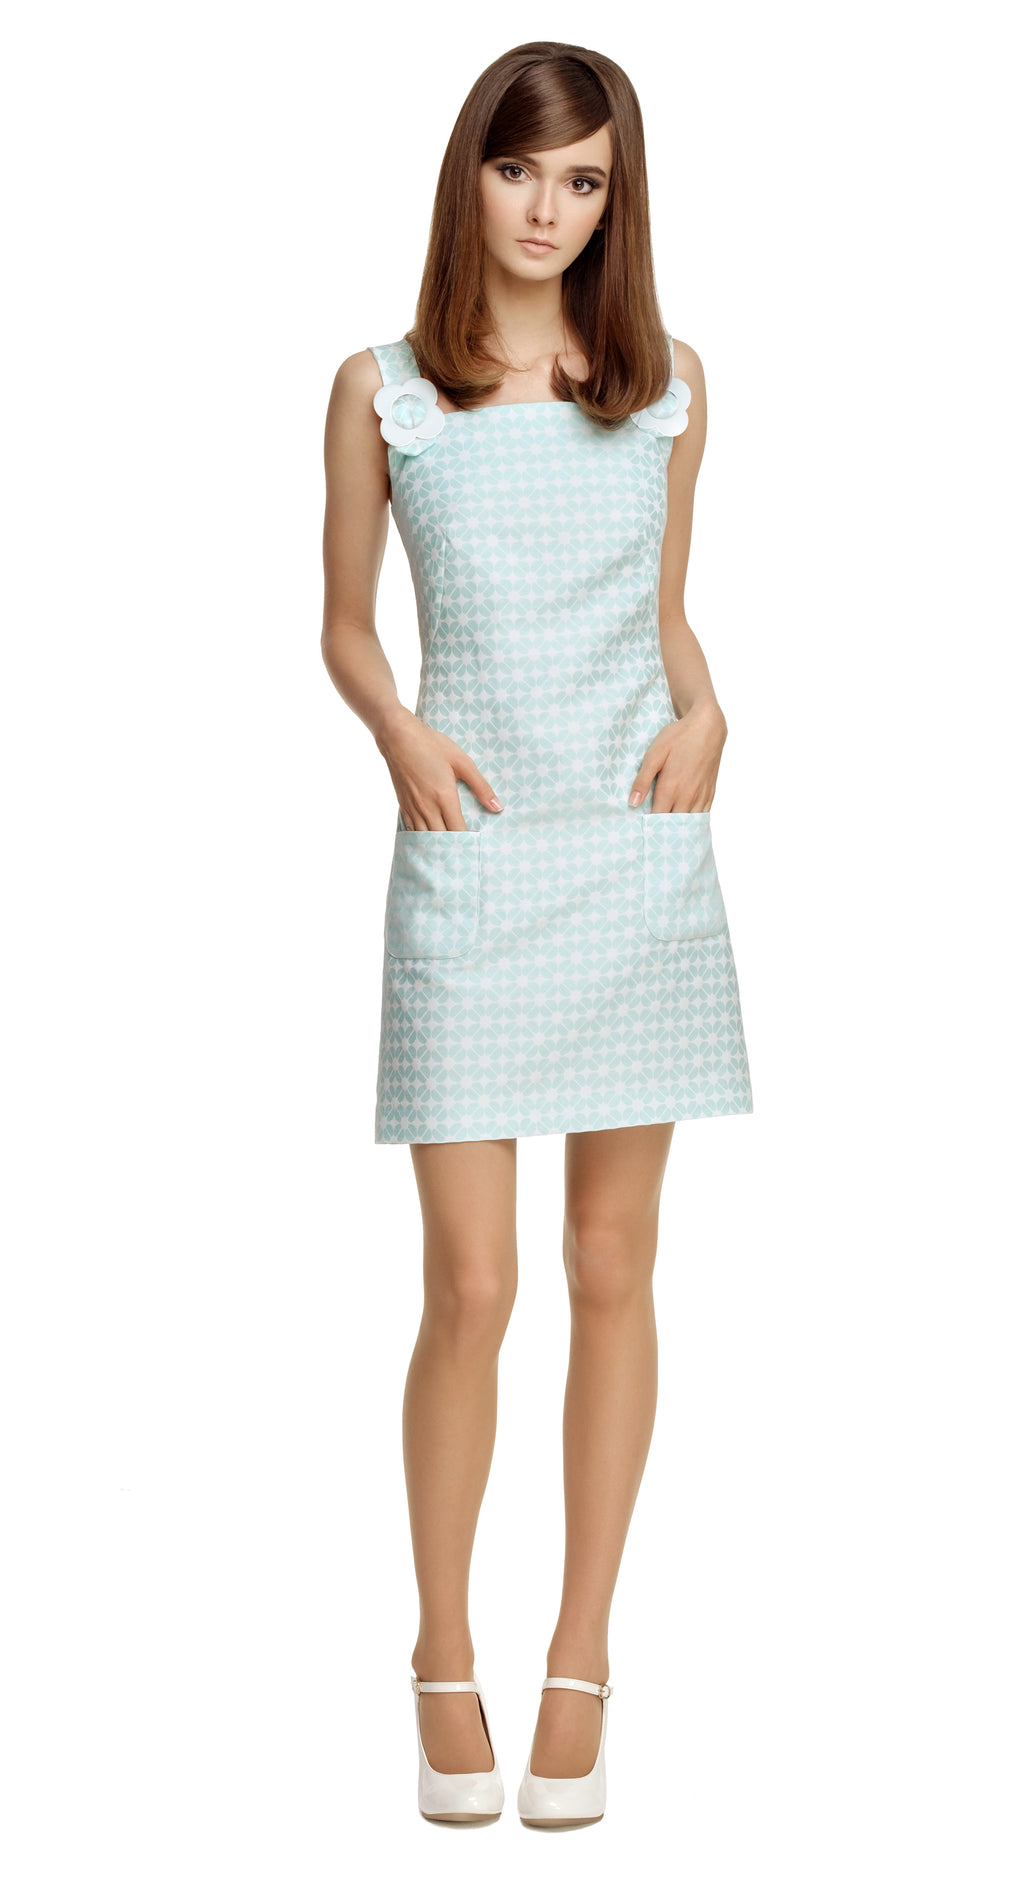 GREEN GEOMETRIC PATTERN DRESS WITH FLOWER BUCKLES